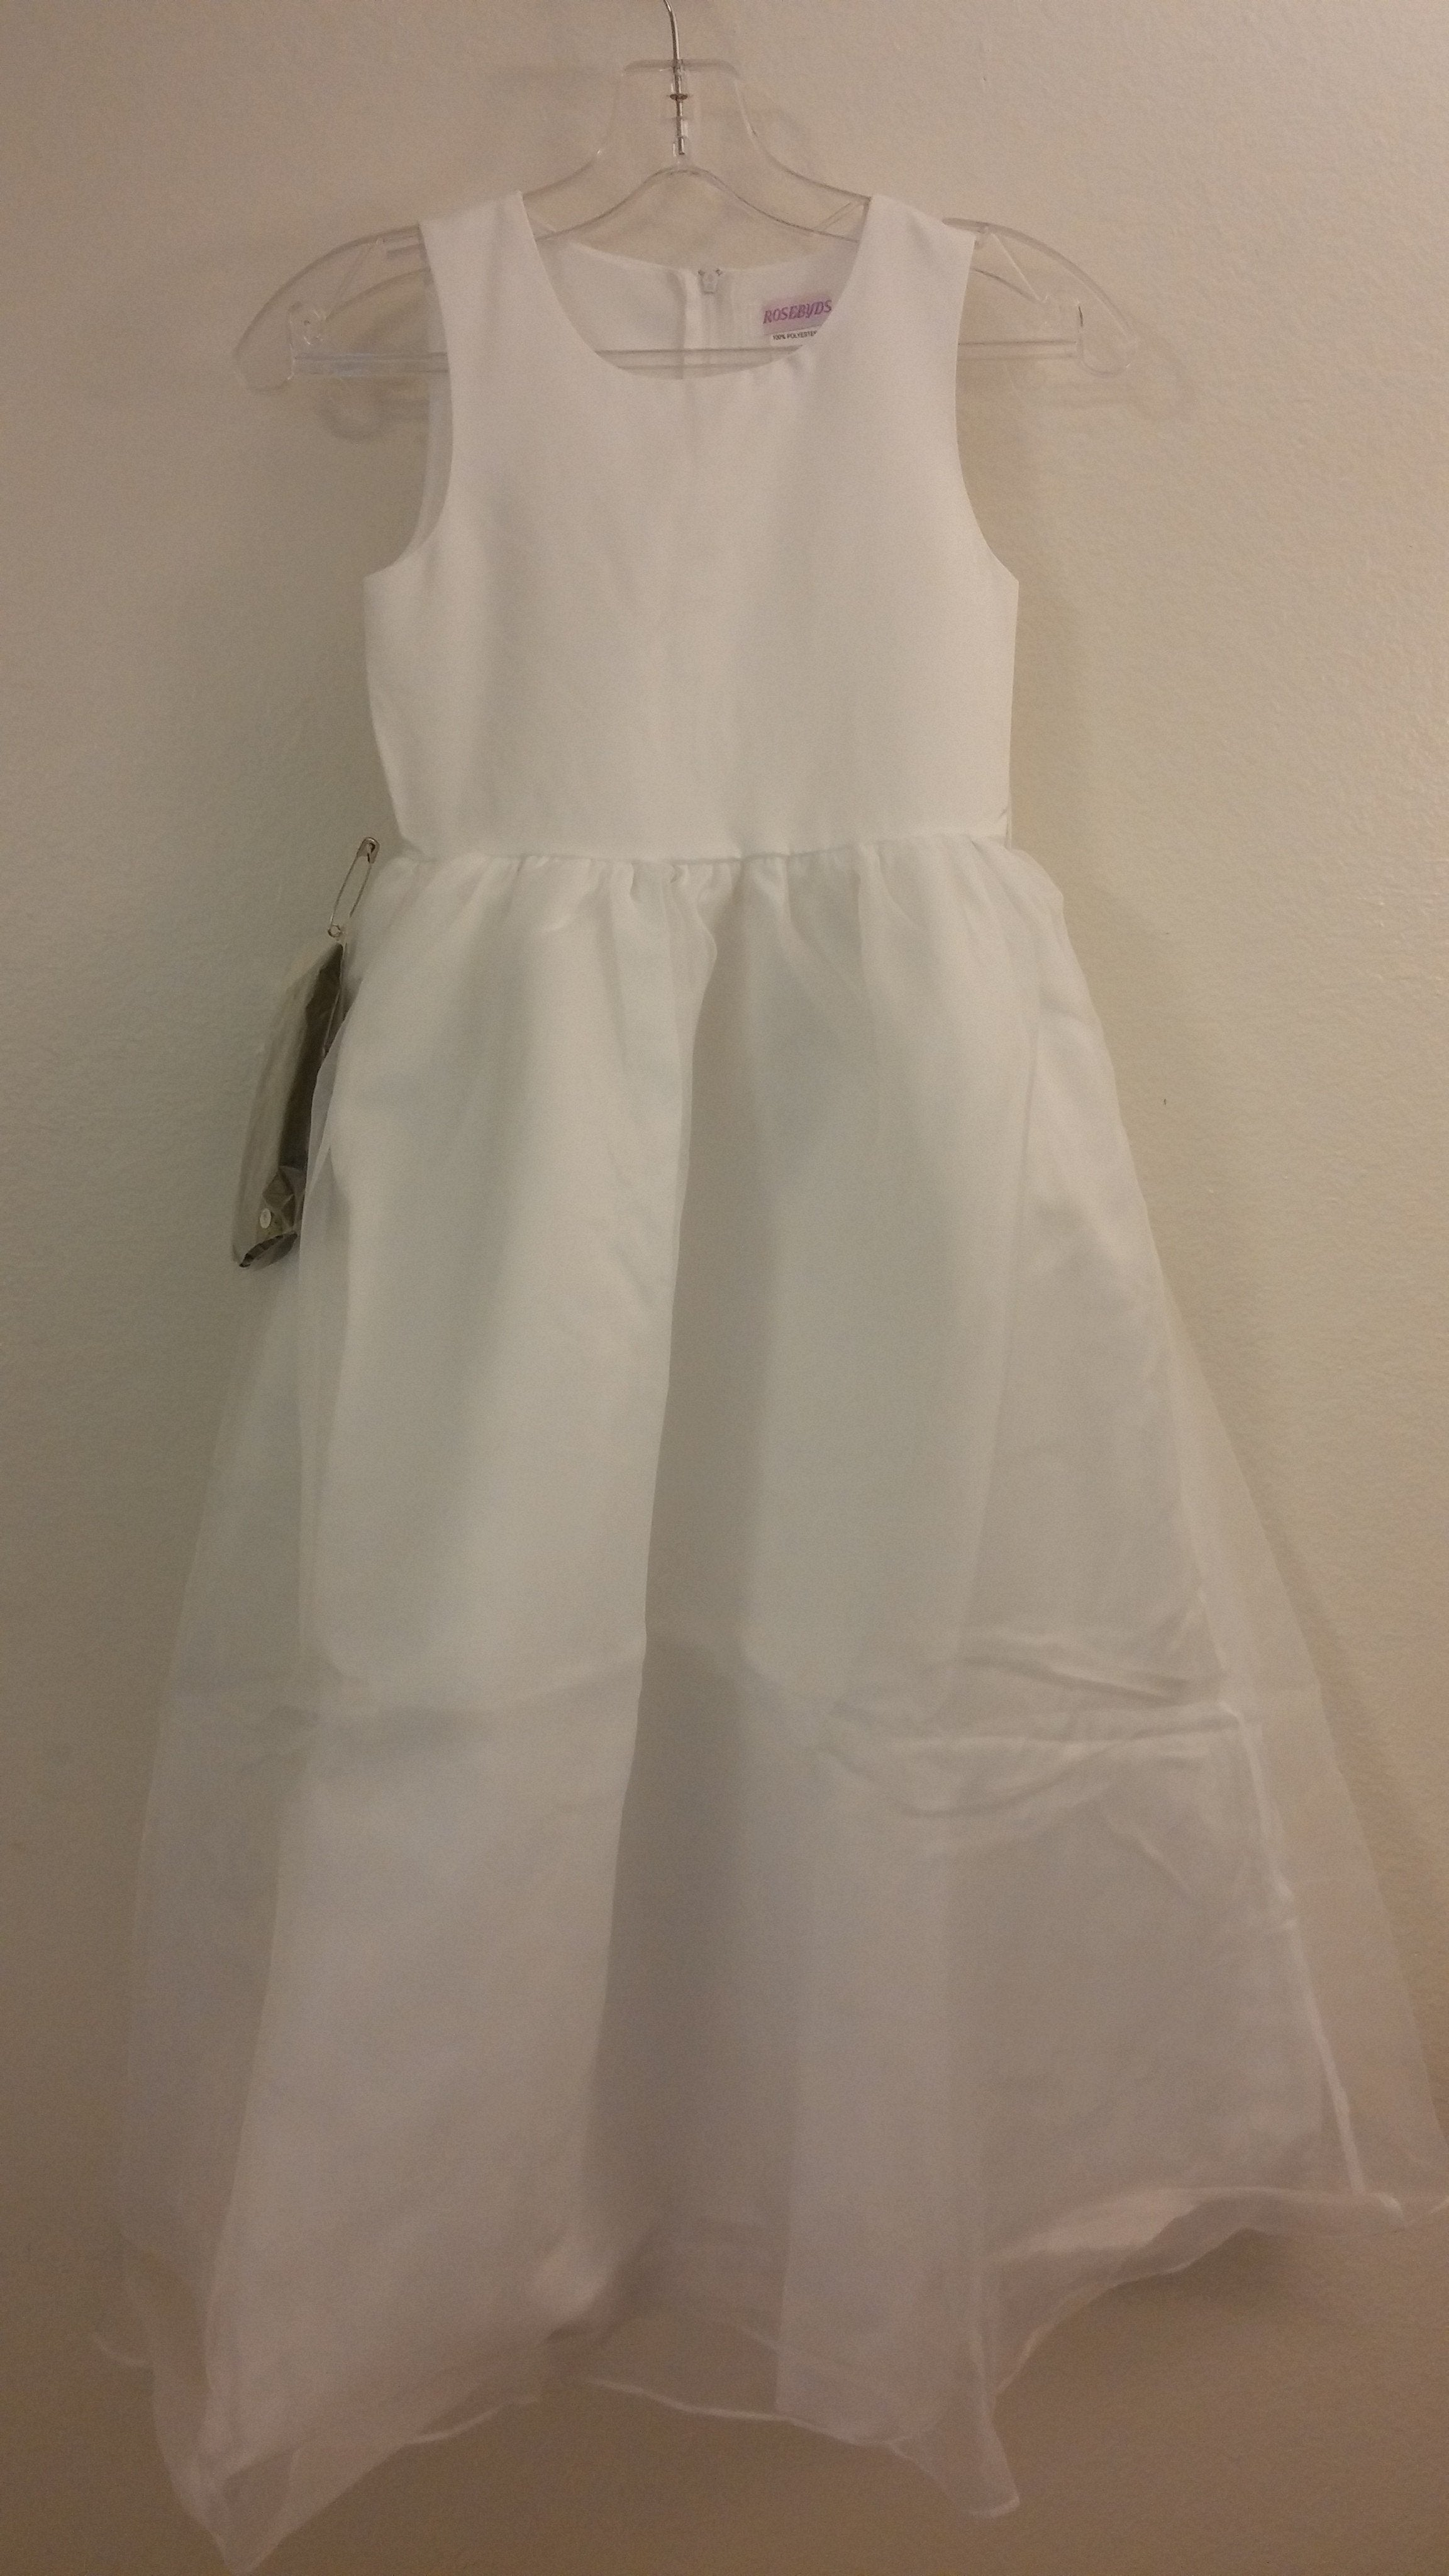 Rosebud 5101 White/Black size 8 In Stock Flower Girl Dress-NEW - Tom's Bridal